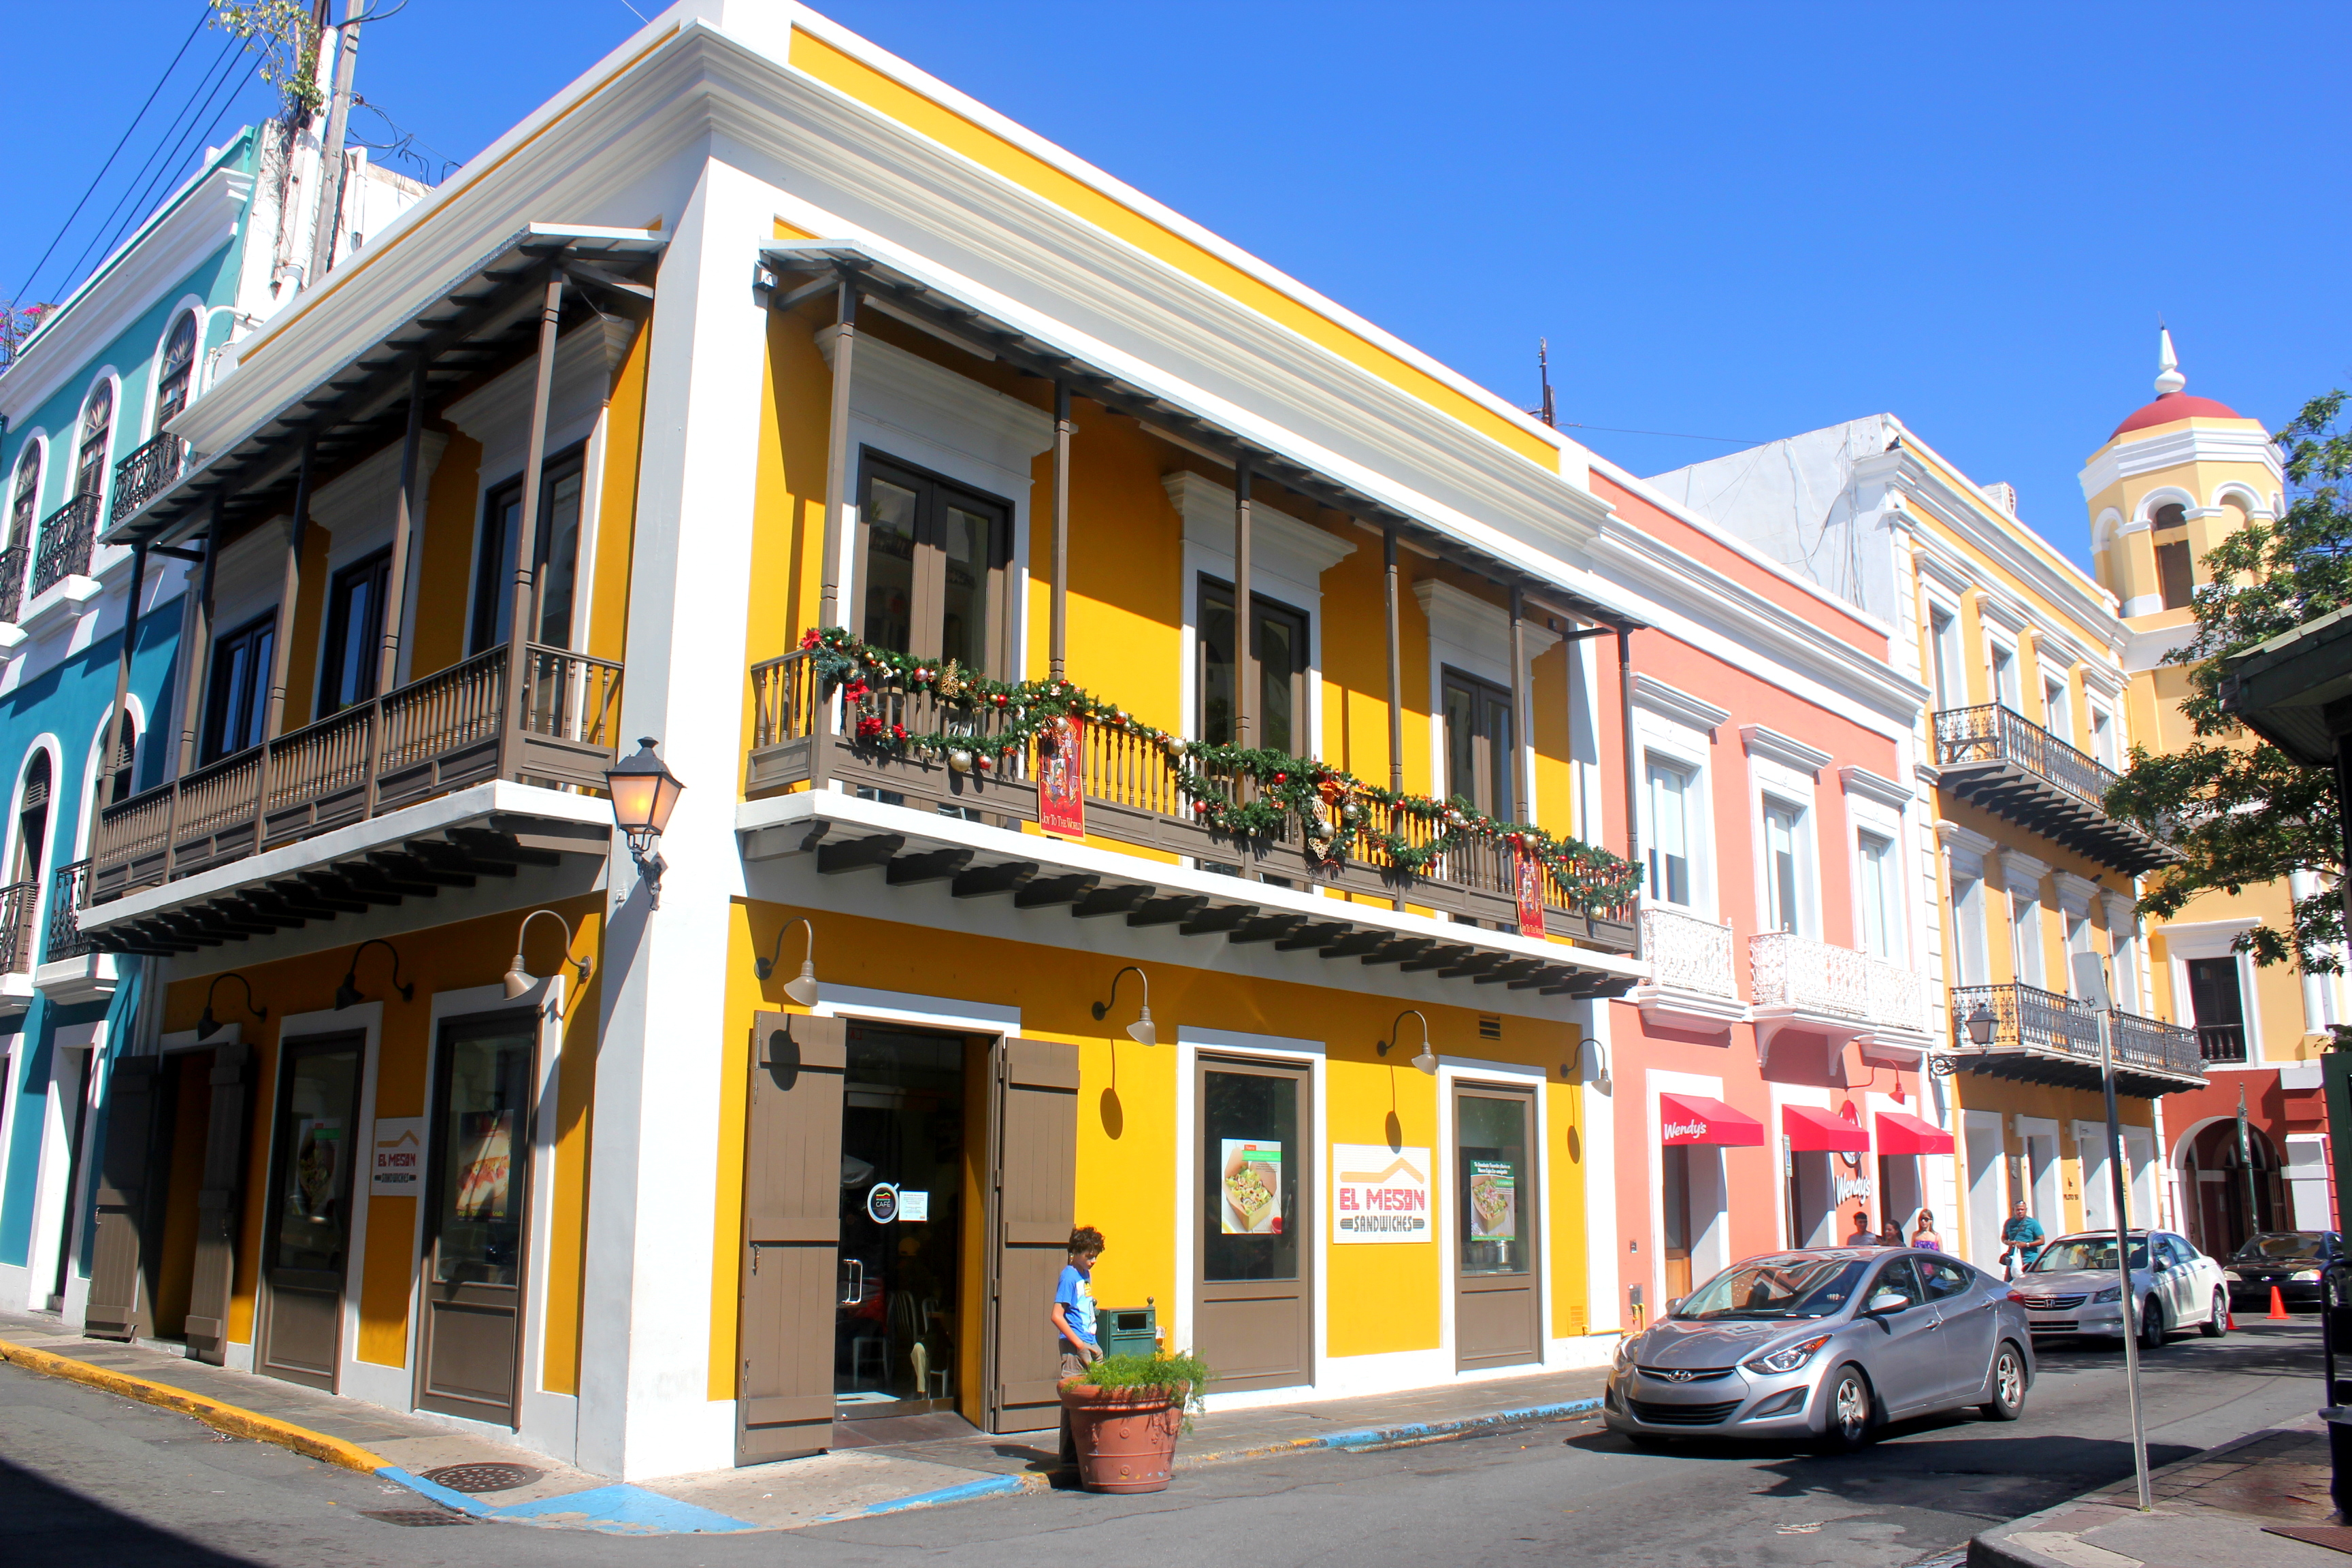 The colourful streets of Old San Juan, Puerto Rico